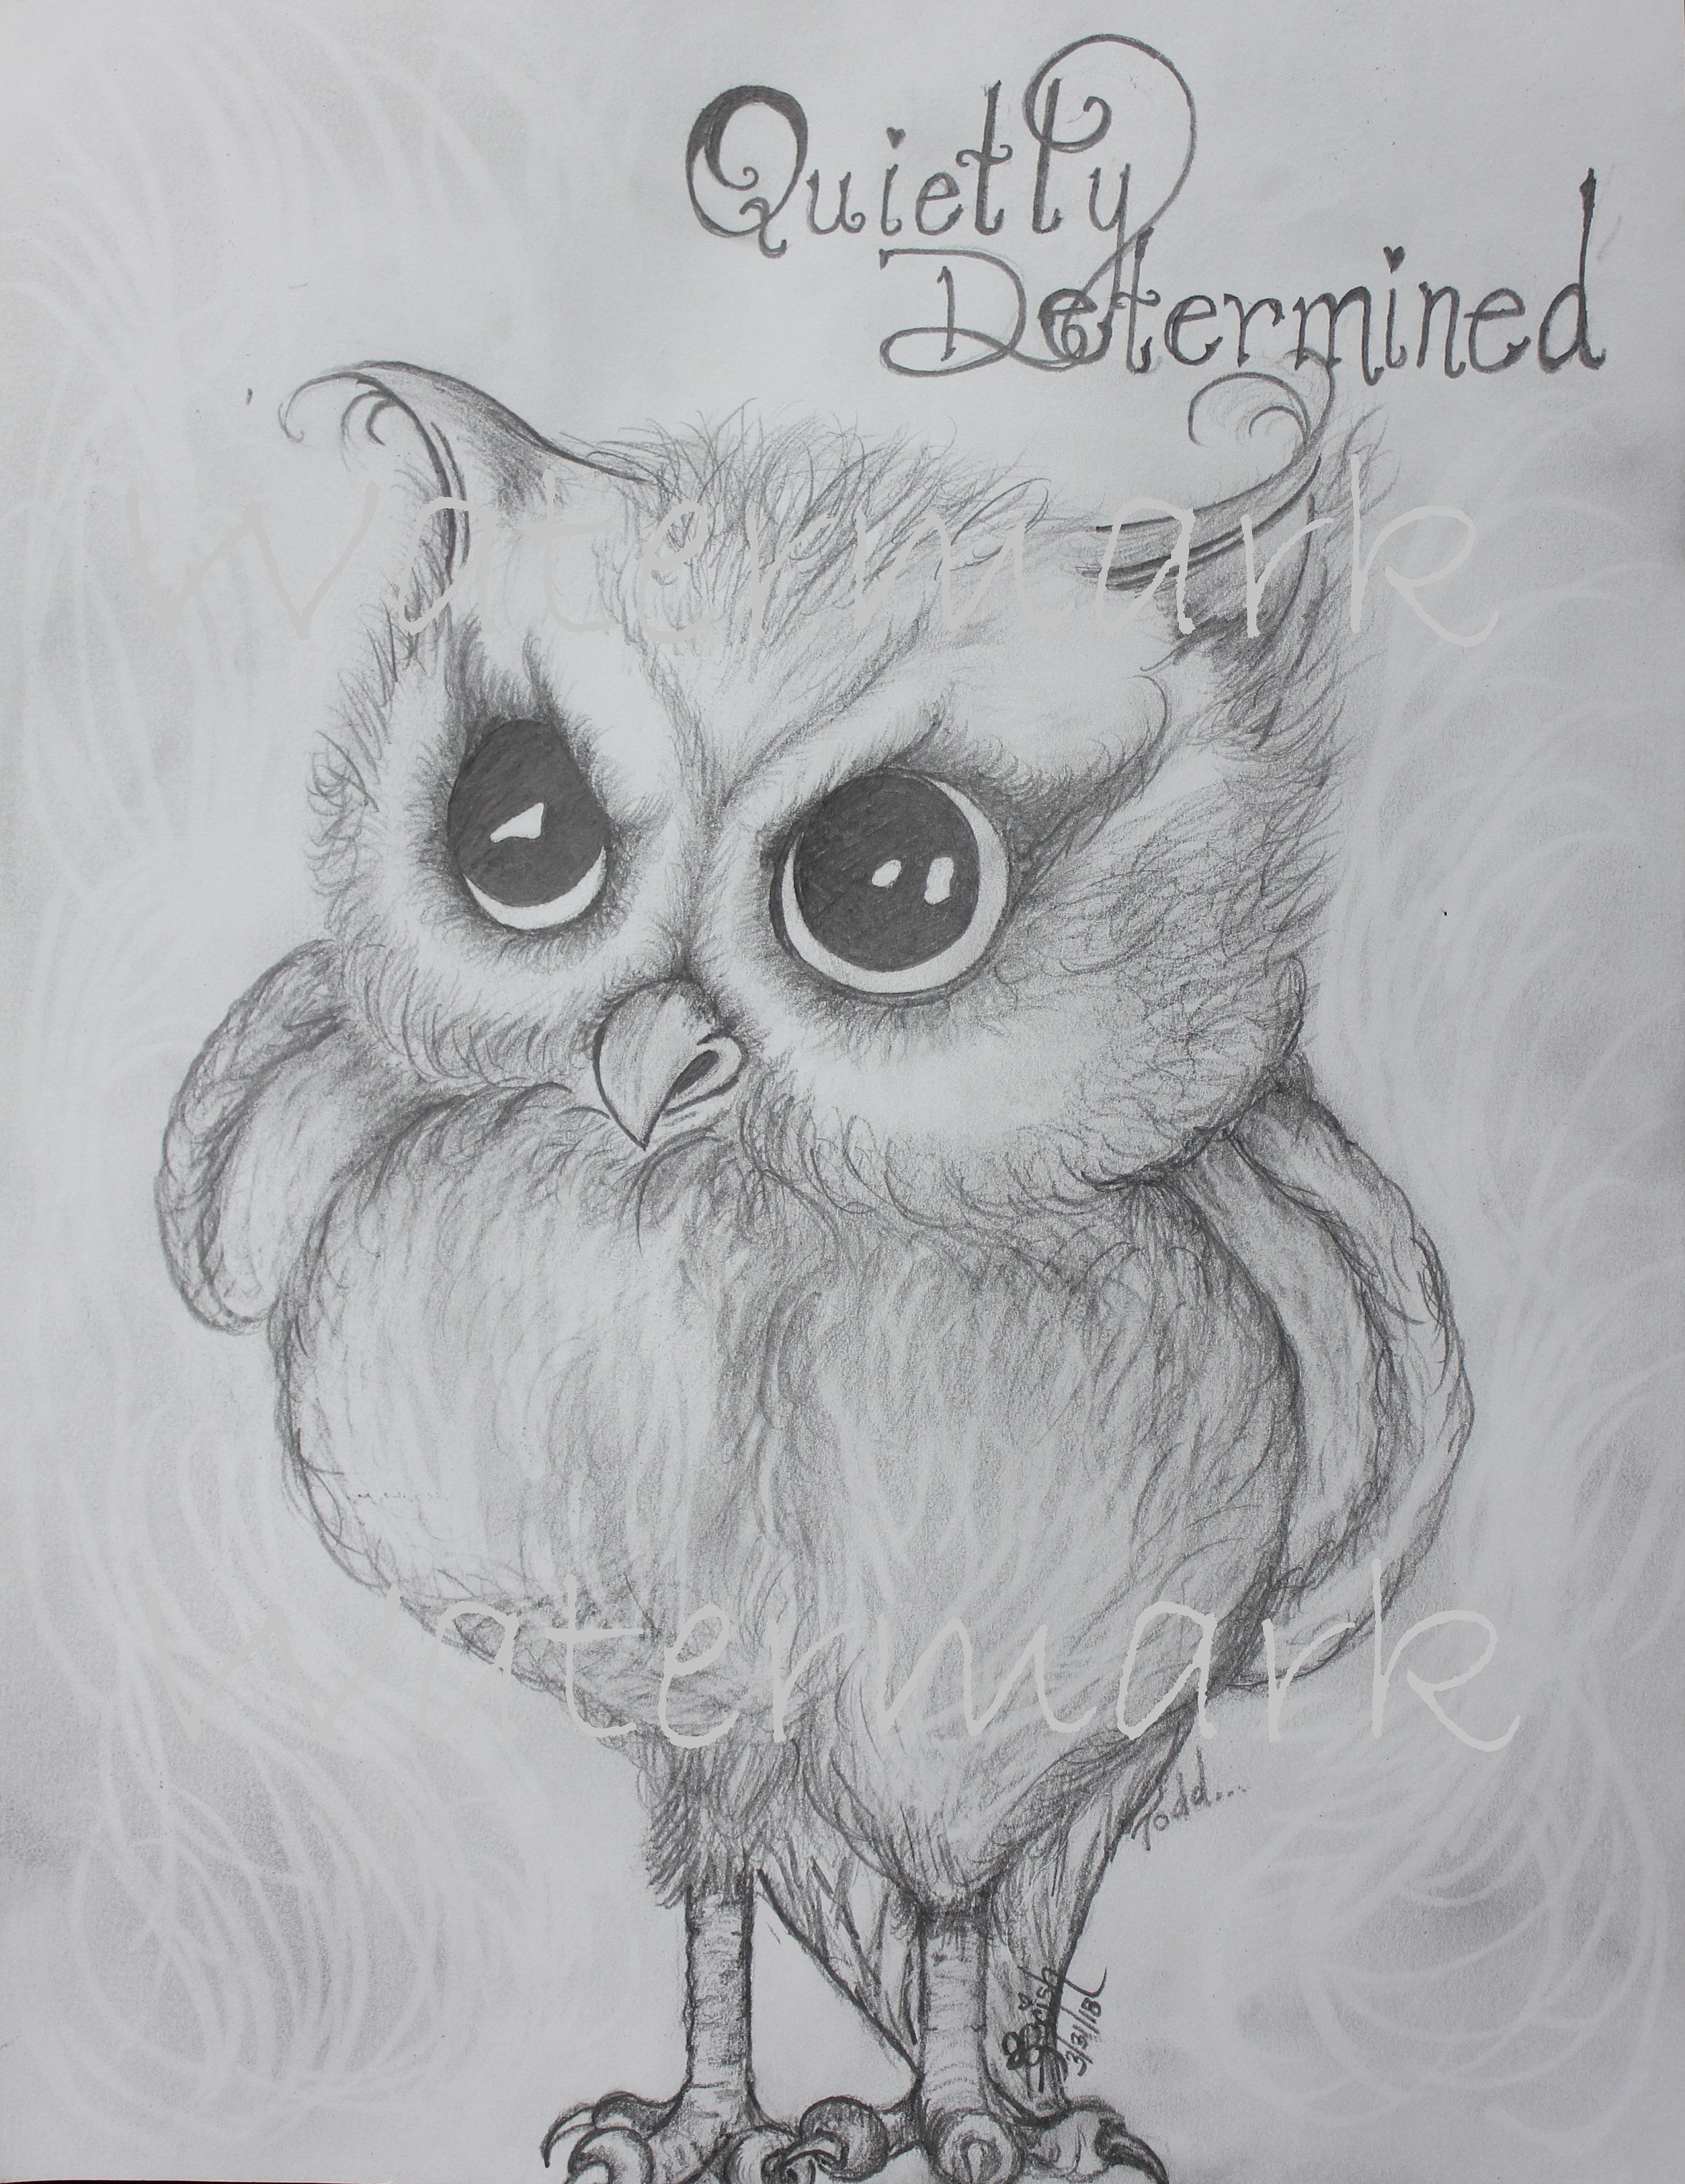 Cute Quietly Determined Owl Cute Owl Print Determined Owl Sketch